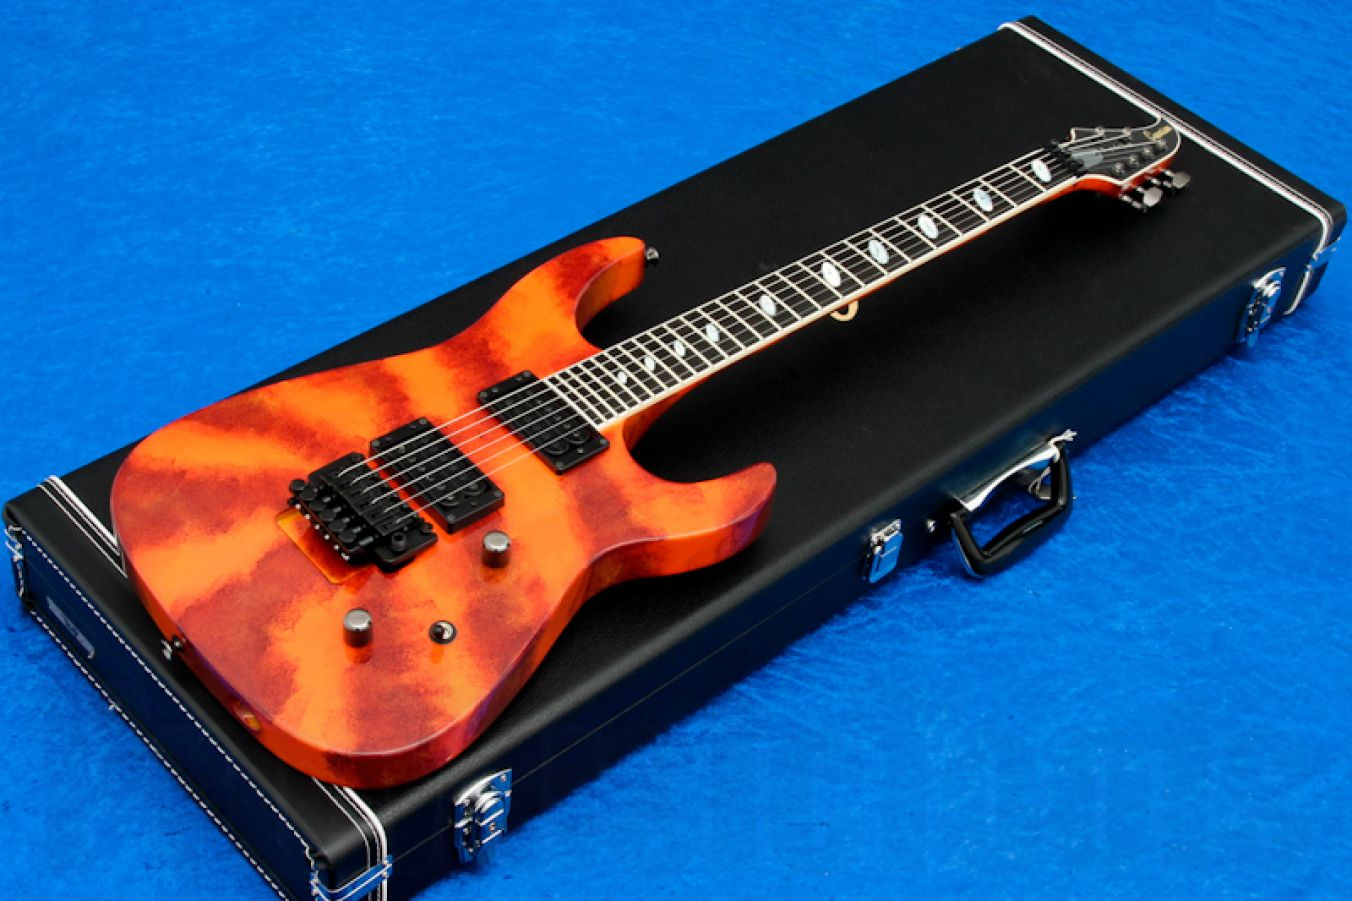 Caparison TAT II - Red Sunset Limited Edition